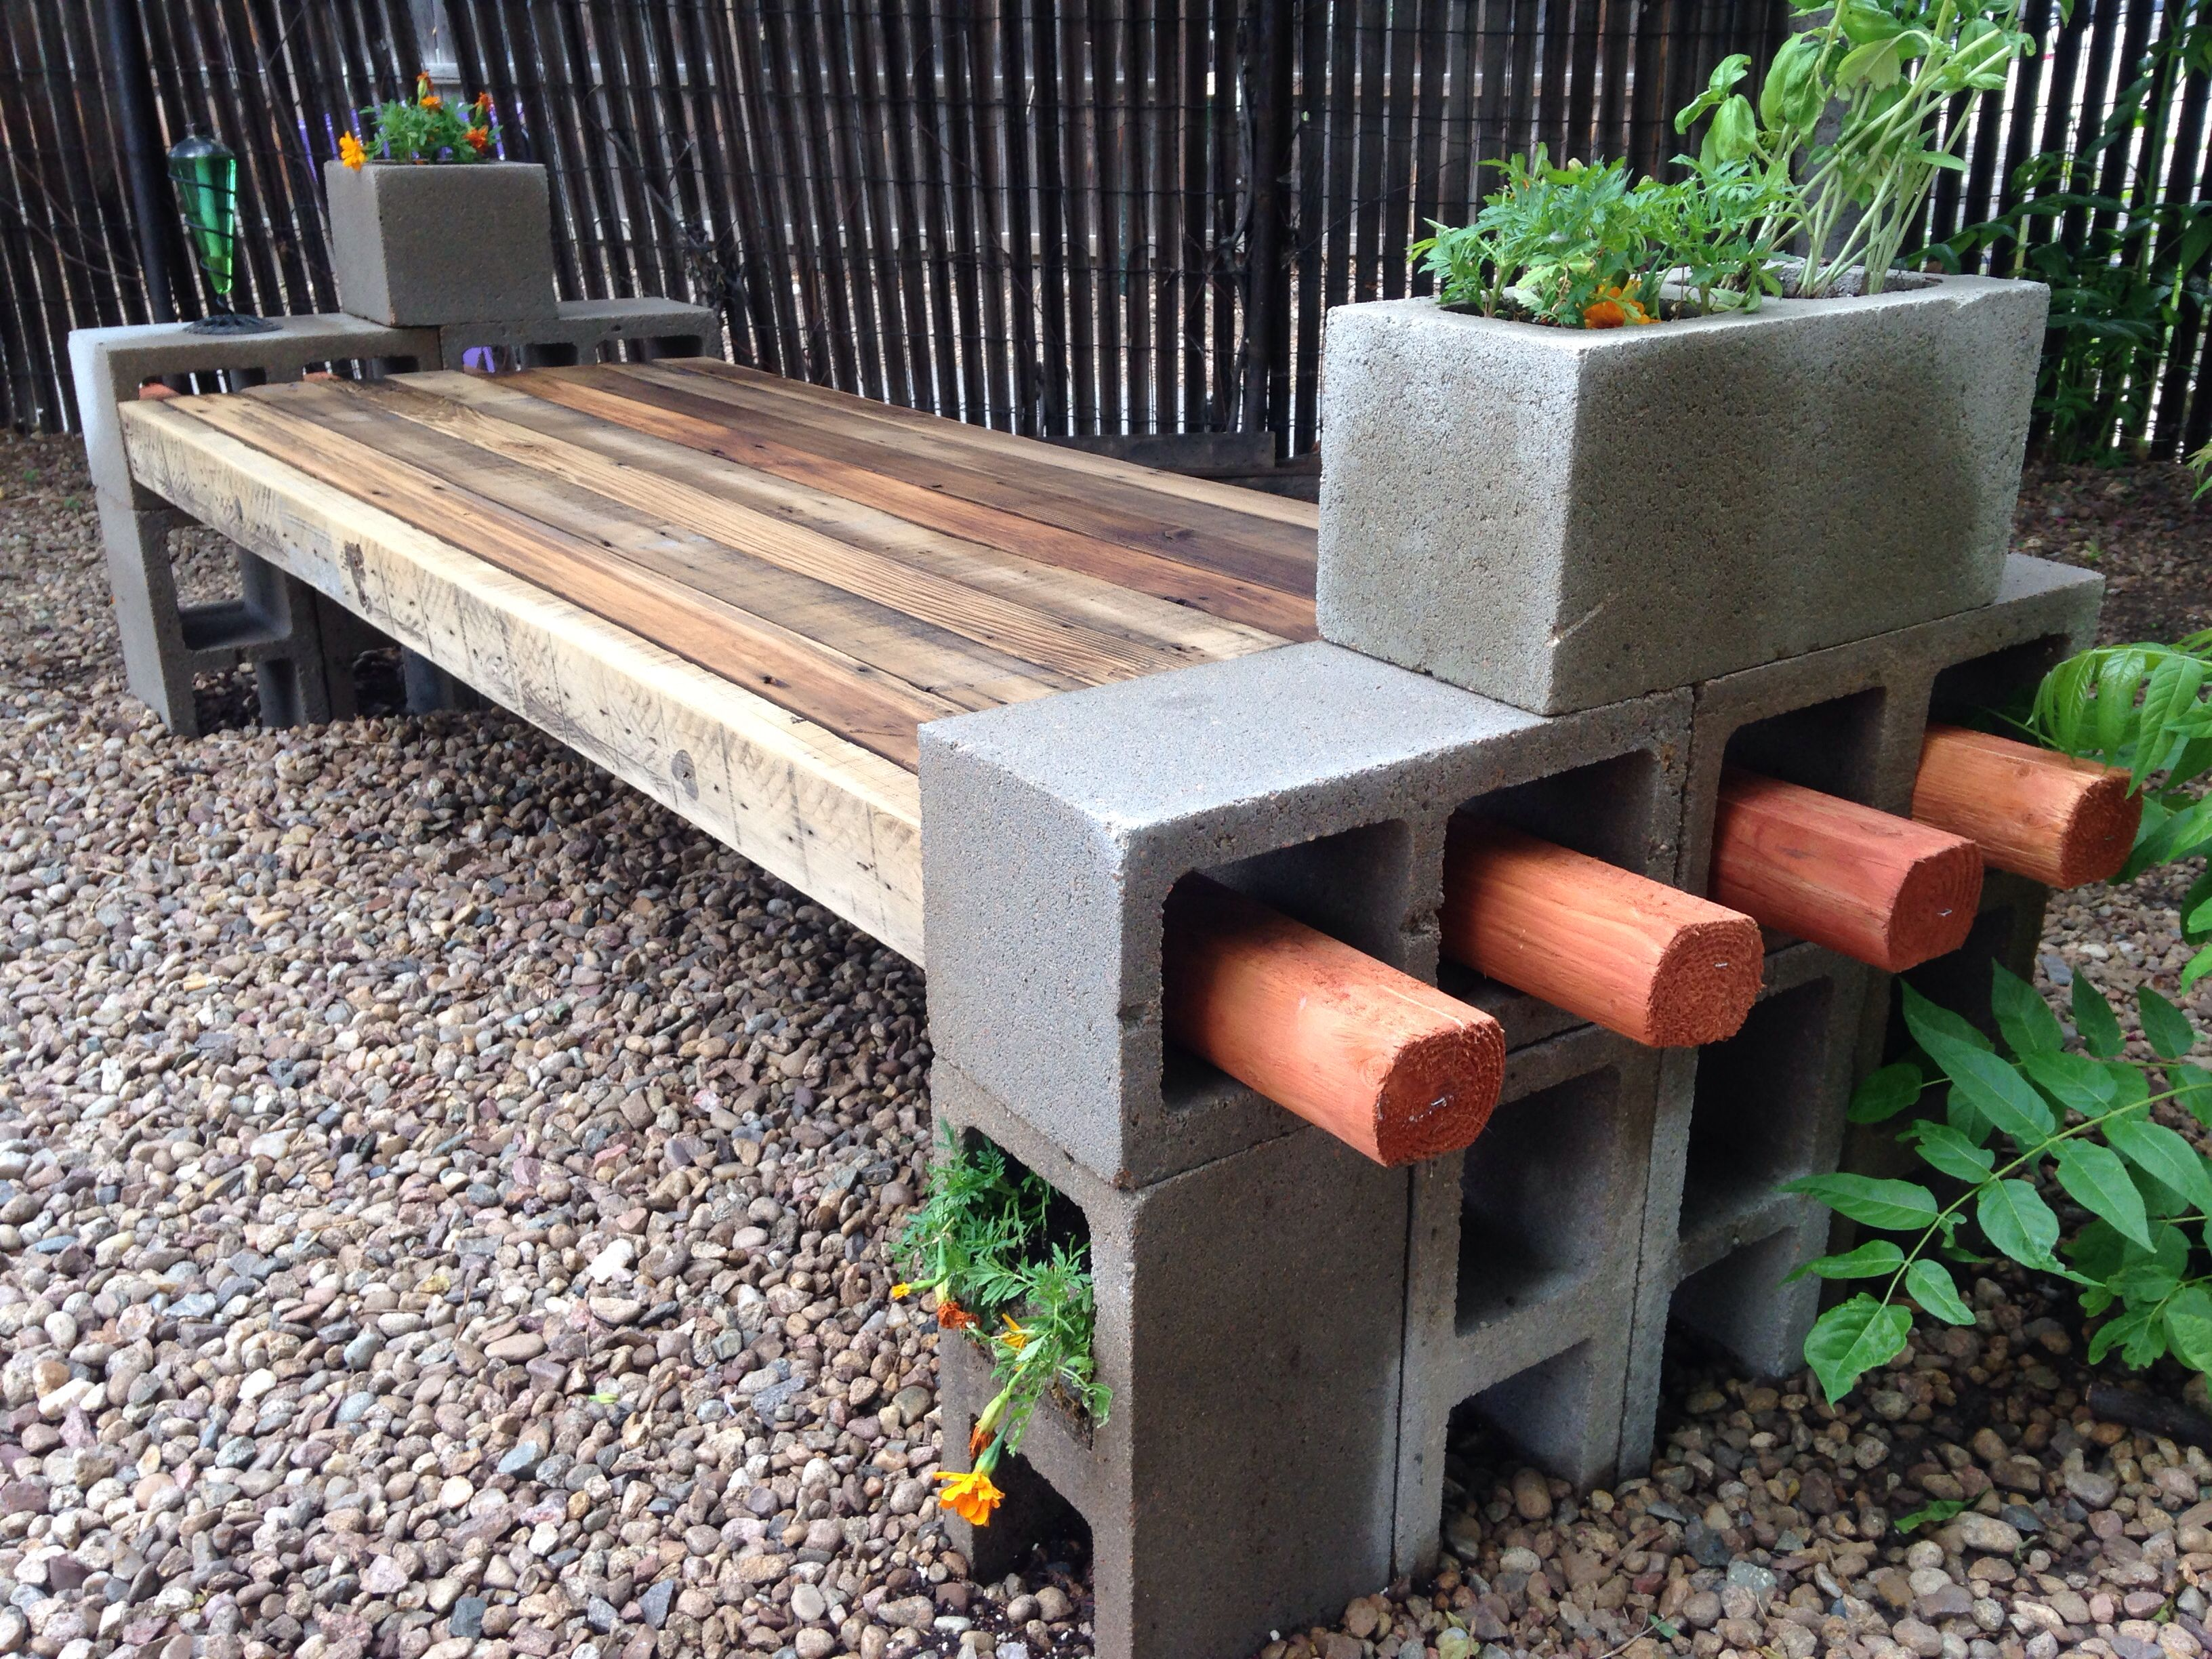 Design Cinder Block Bench my take on the cinder block bench using repurposed fence wood wood